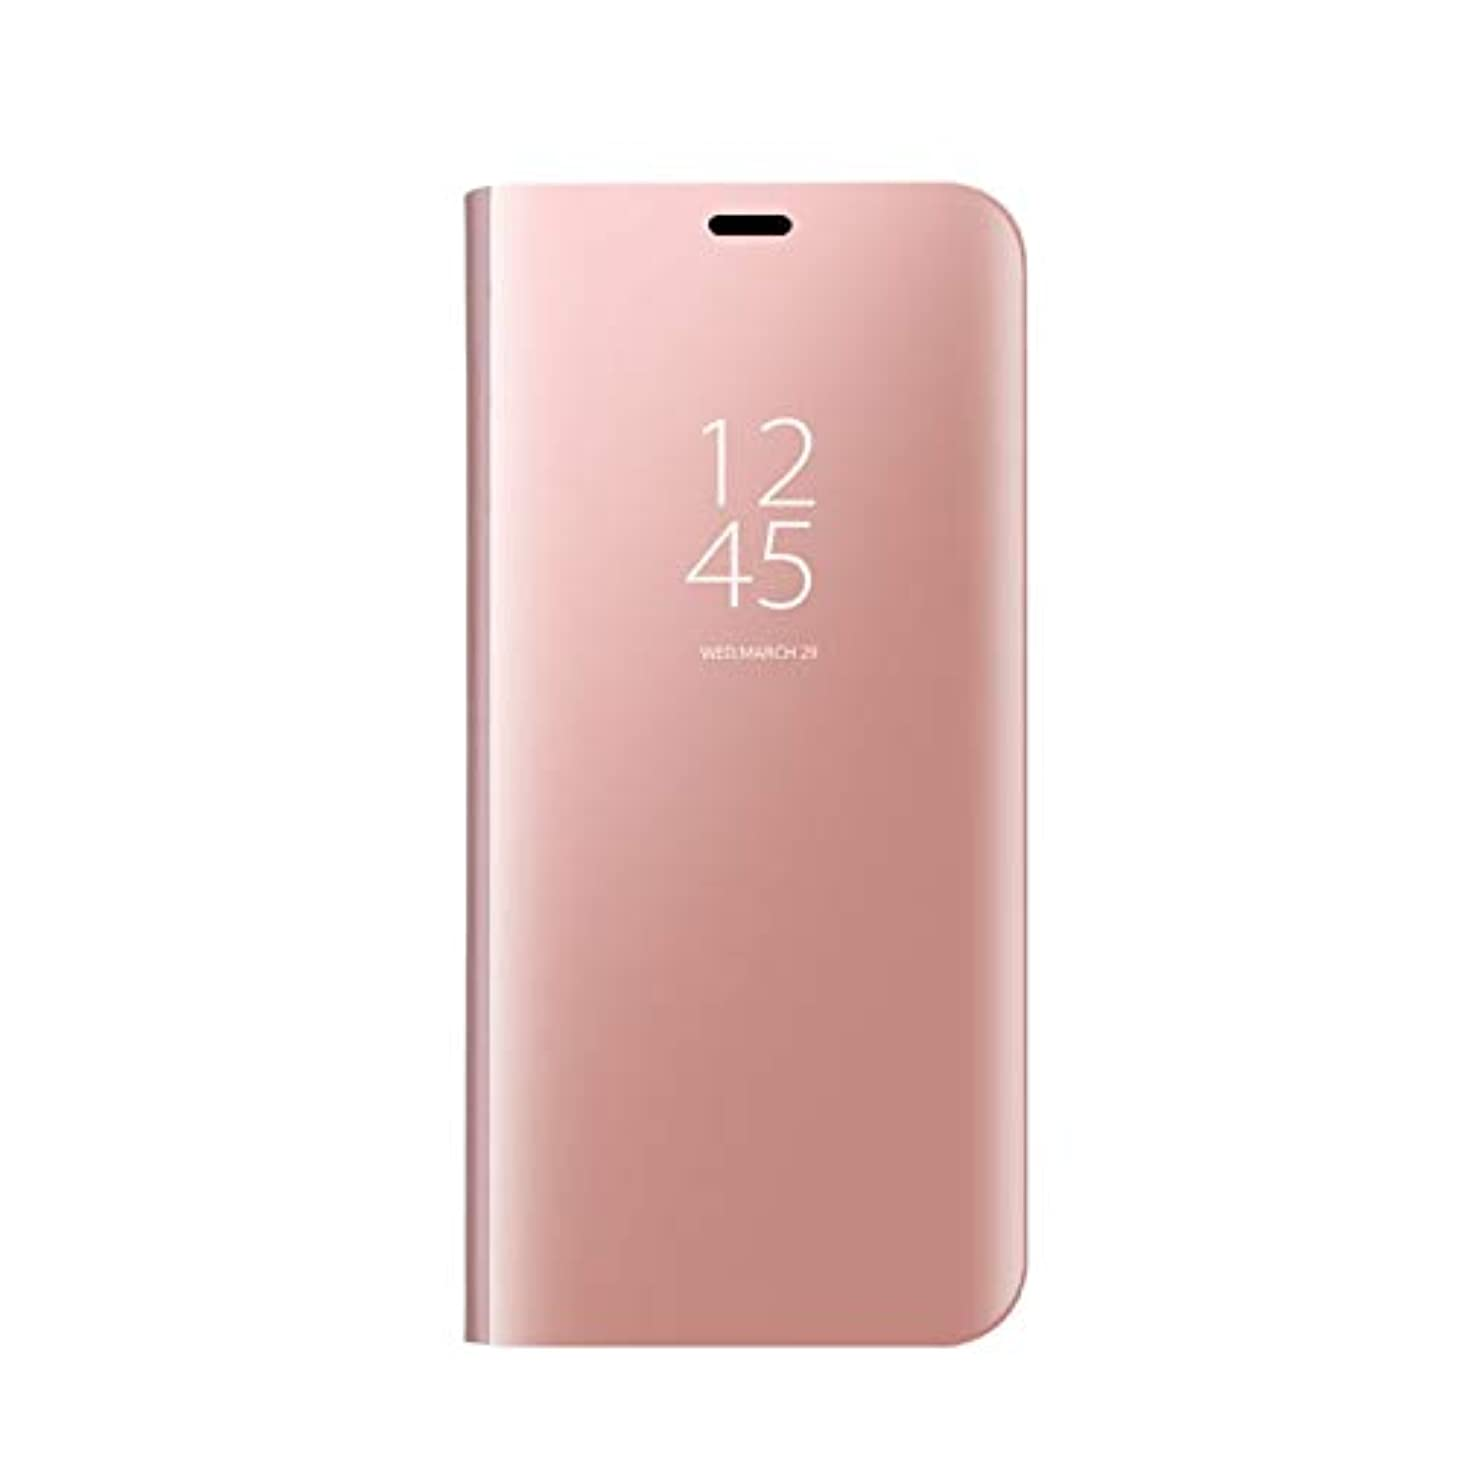 LIKESEA Huawei Mate 8 Case, Slim Fit Electroplate Plating Smart Clear View Case Flip Stand PC Hard Cover 360 Degree Full Body Shockproof Protective Skin for Huawei Mate 8 - Rose Gold